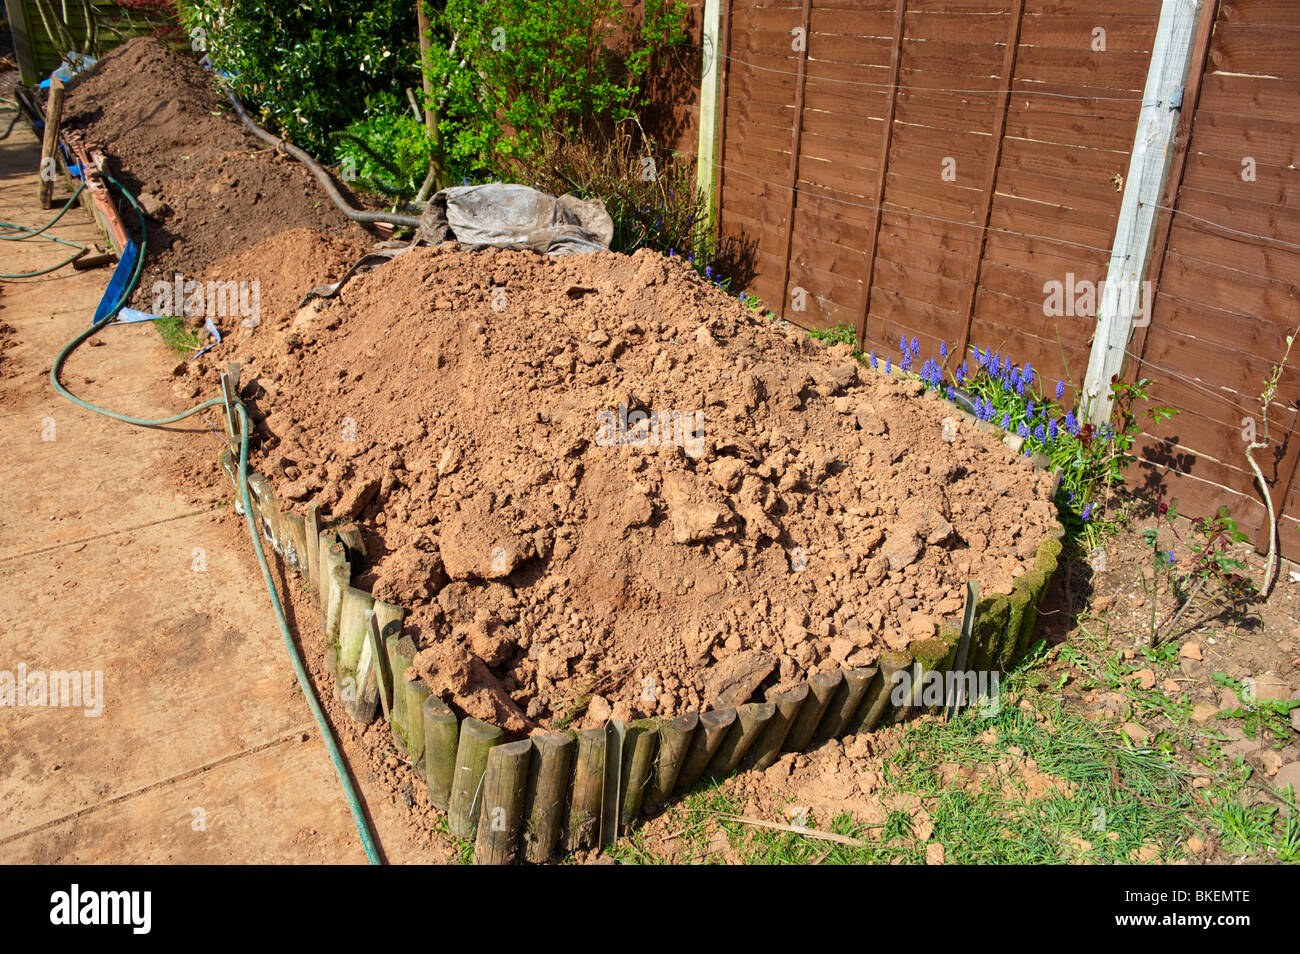 Soil In Garden Held In Place By Wooden Barrier Awaiting Removal